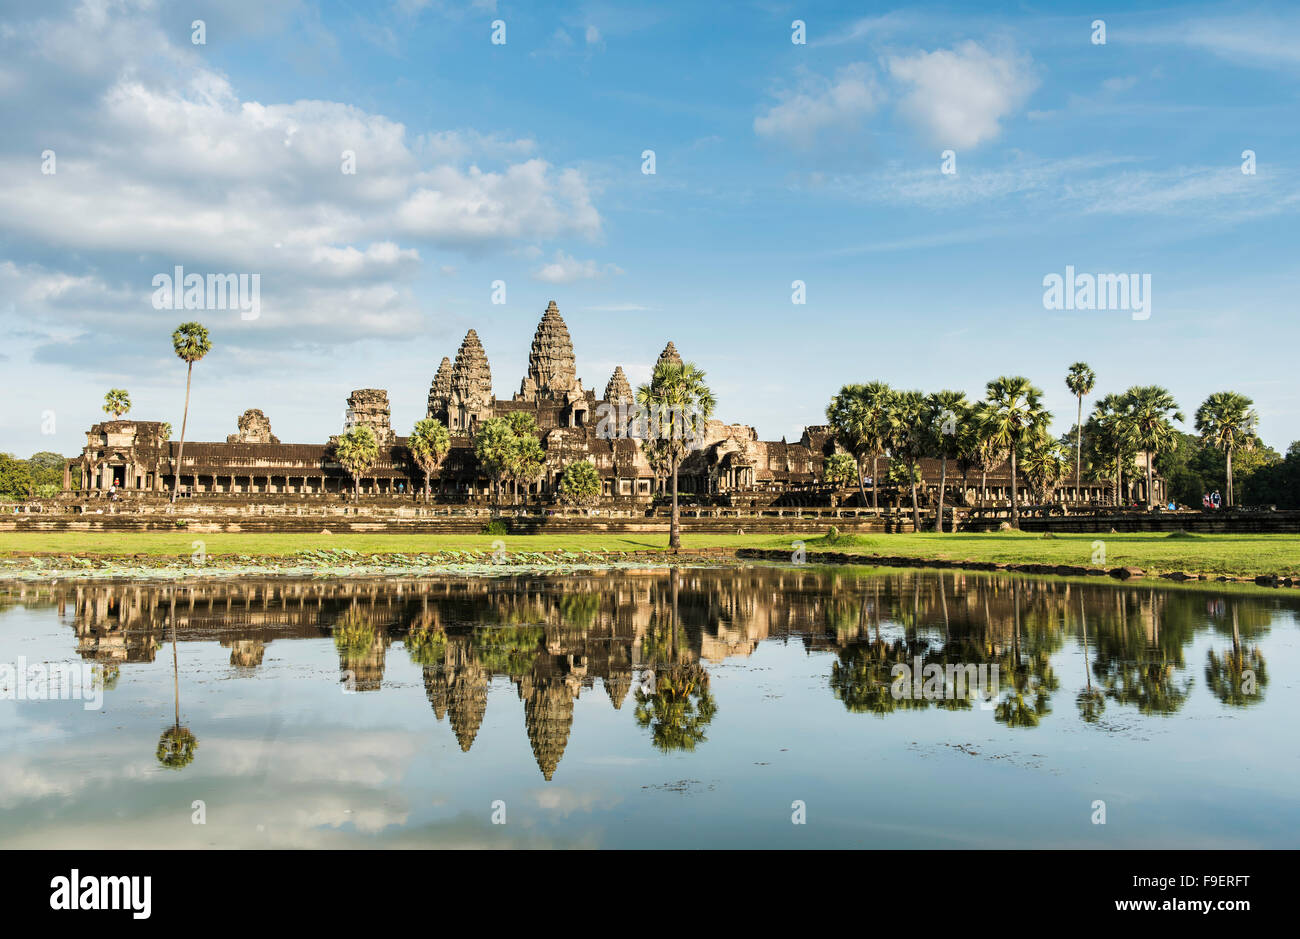 Angkor Wat temple reflected in a foreground pool after monsoon rains. - Stock Image